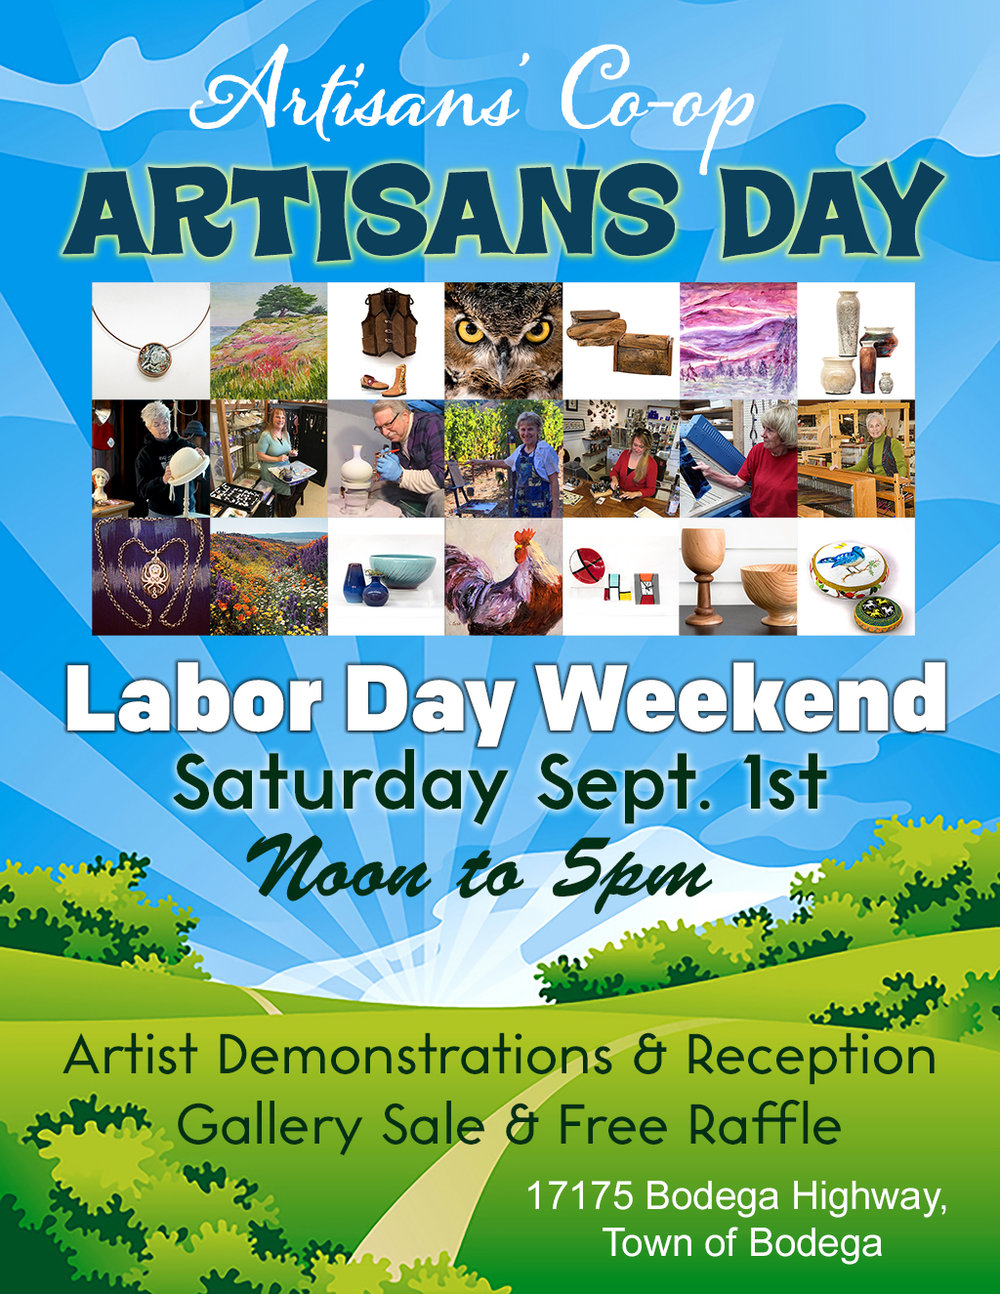 The Artisans' Co-op in Bodega celebrates the arts during their annual Artisans Day. There will be artist demonstrations, gallery wide sale, free raffle and a Meet the Artists Reception.